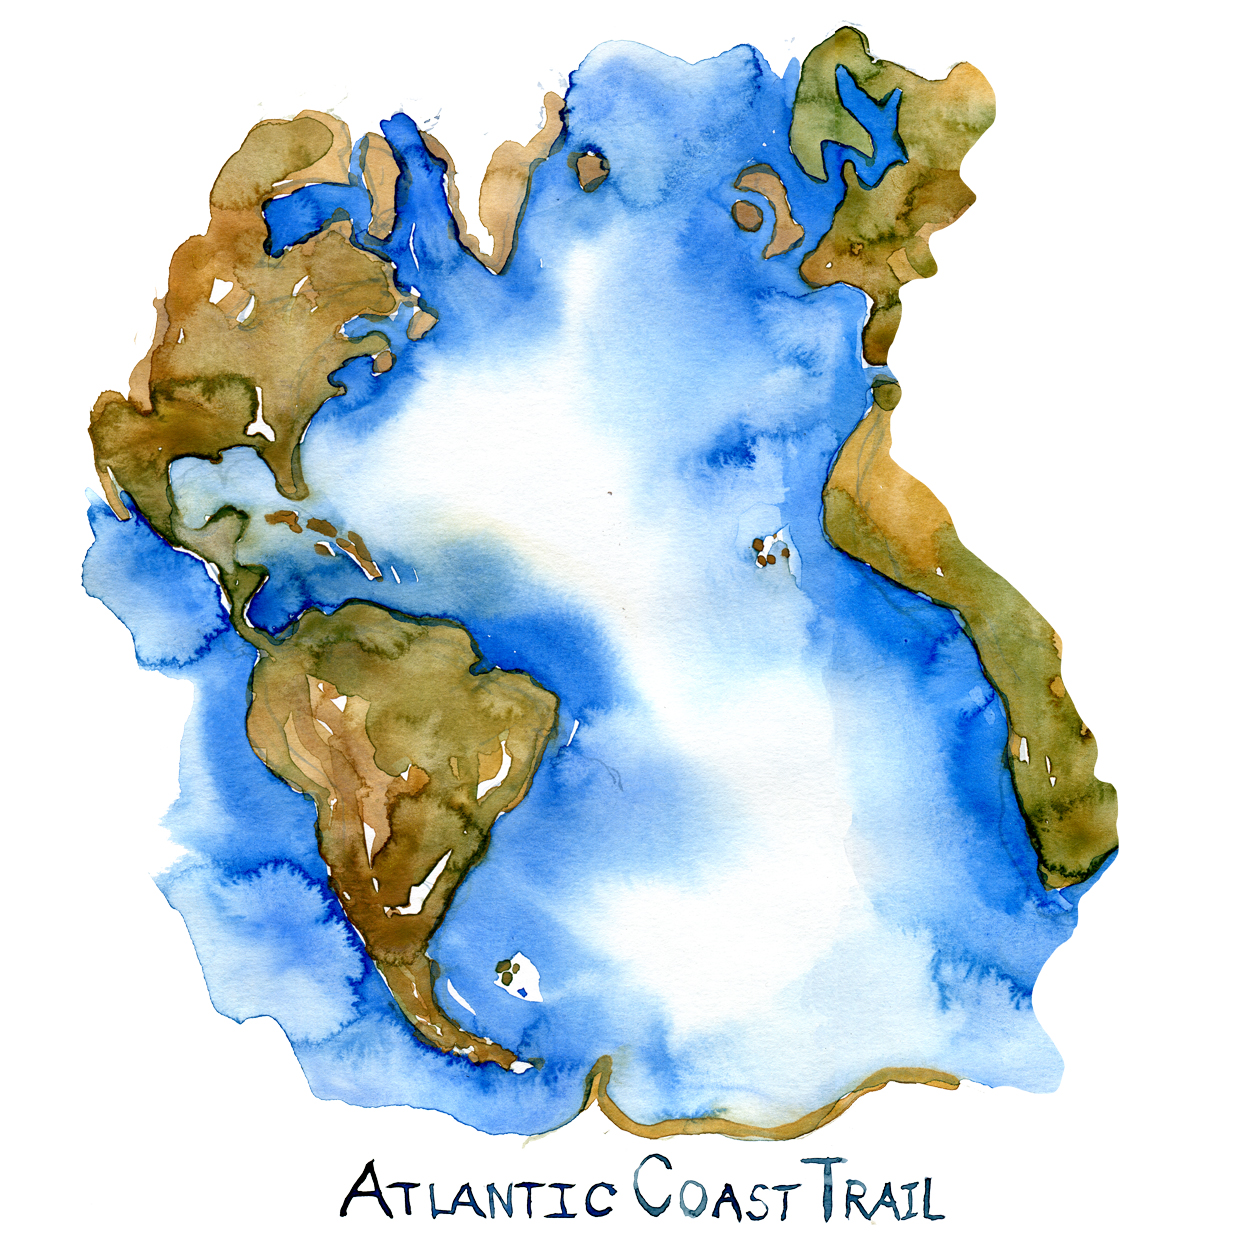 Drawn map of the Atlantic Sea with the Atlantic Coast trail written on it